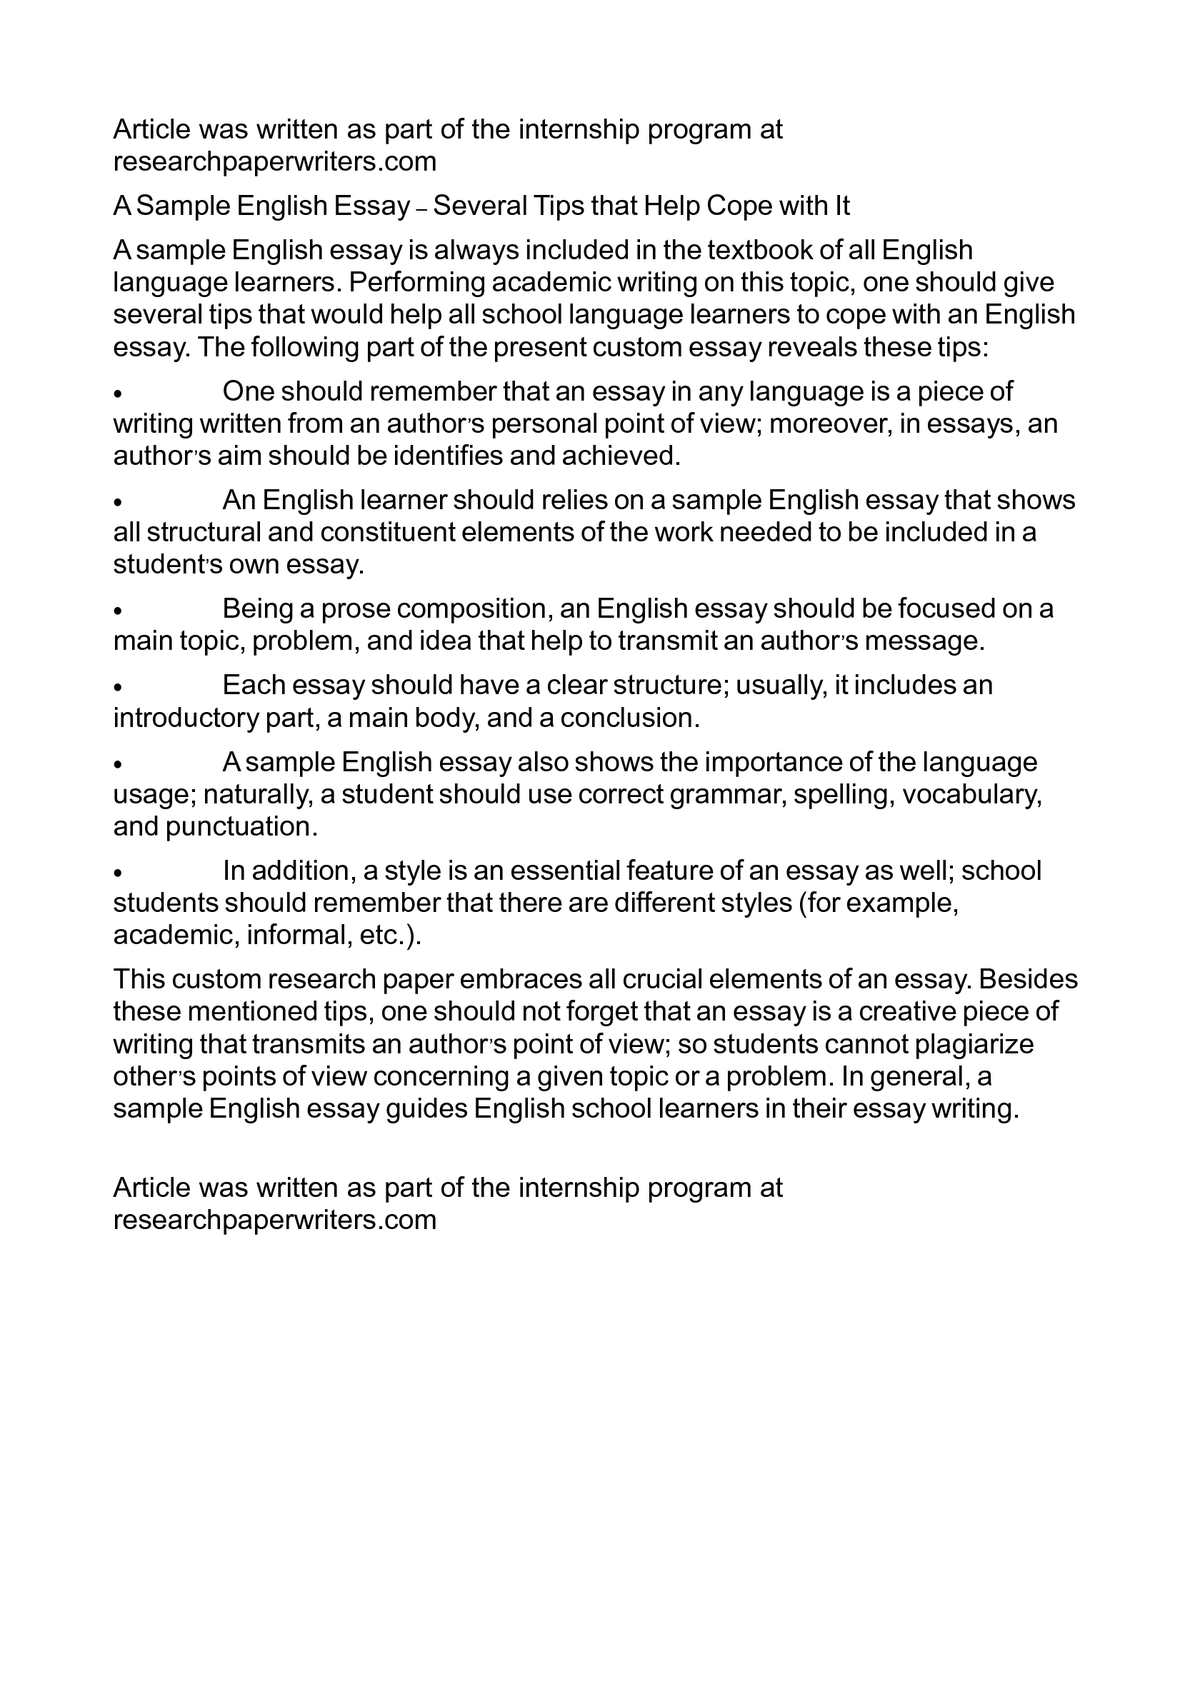 Business Essay Example A Sample English Essay  Several Tips That Help Cope With It Apa Essay Papers also Politics And The English Language Essay Calamo  A Sample English Essay  Several Tips That Help Cope With It Yellow Wallpaper Essays